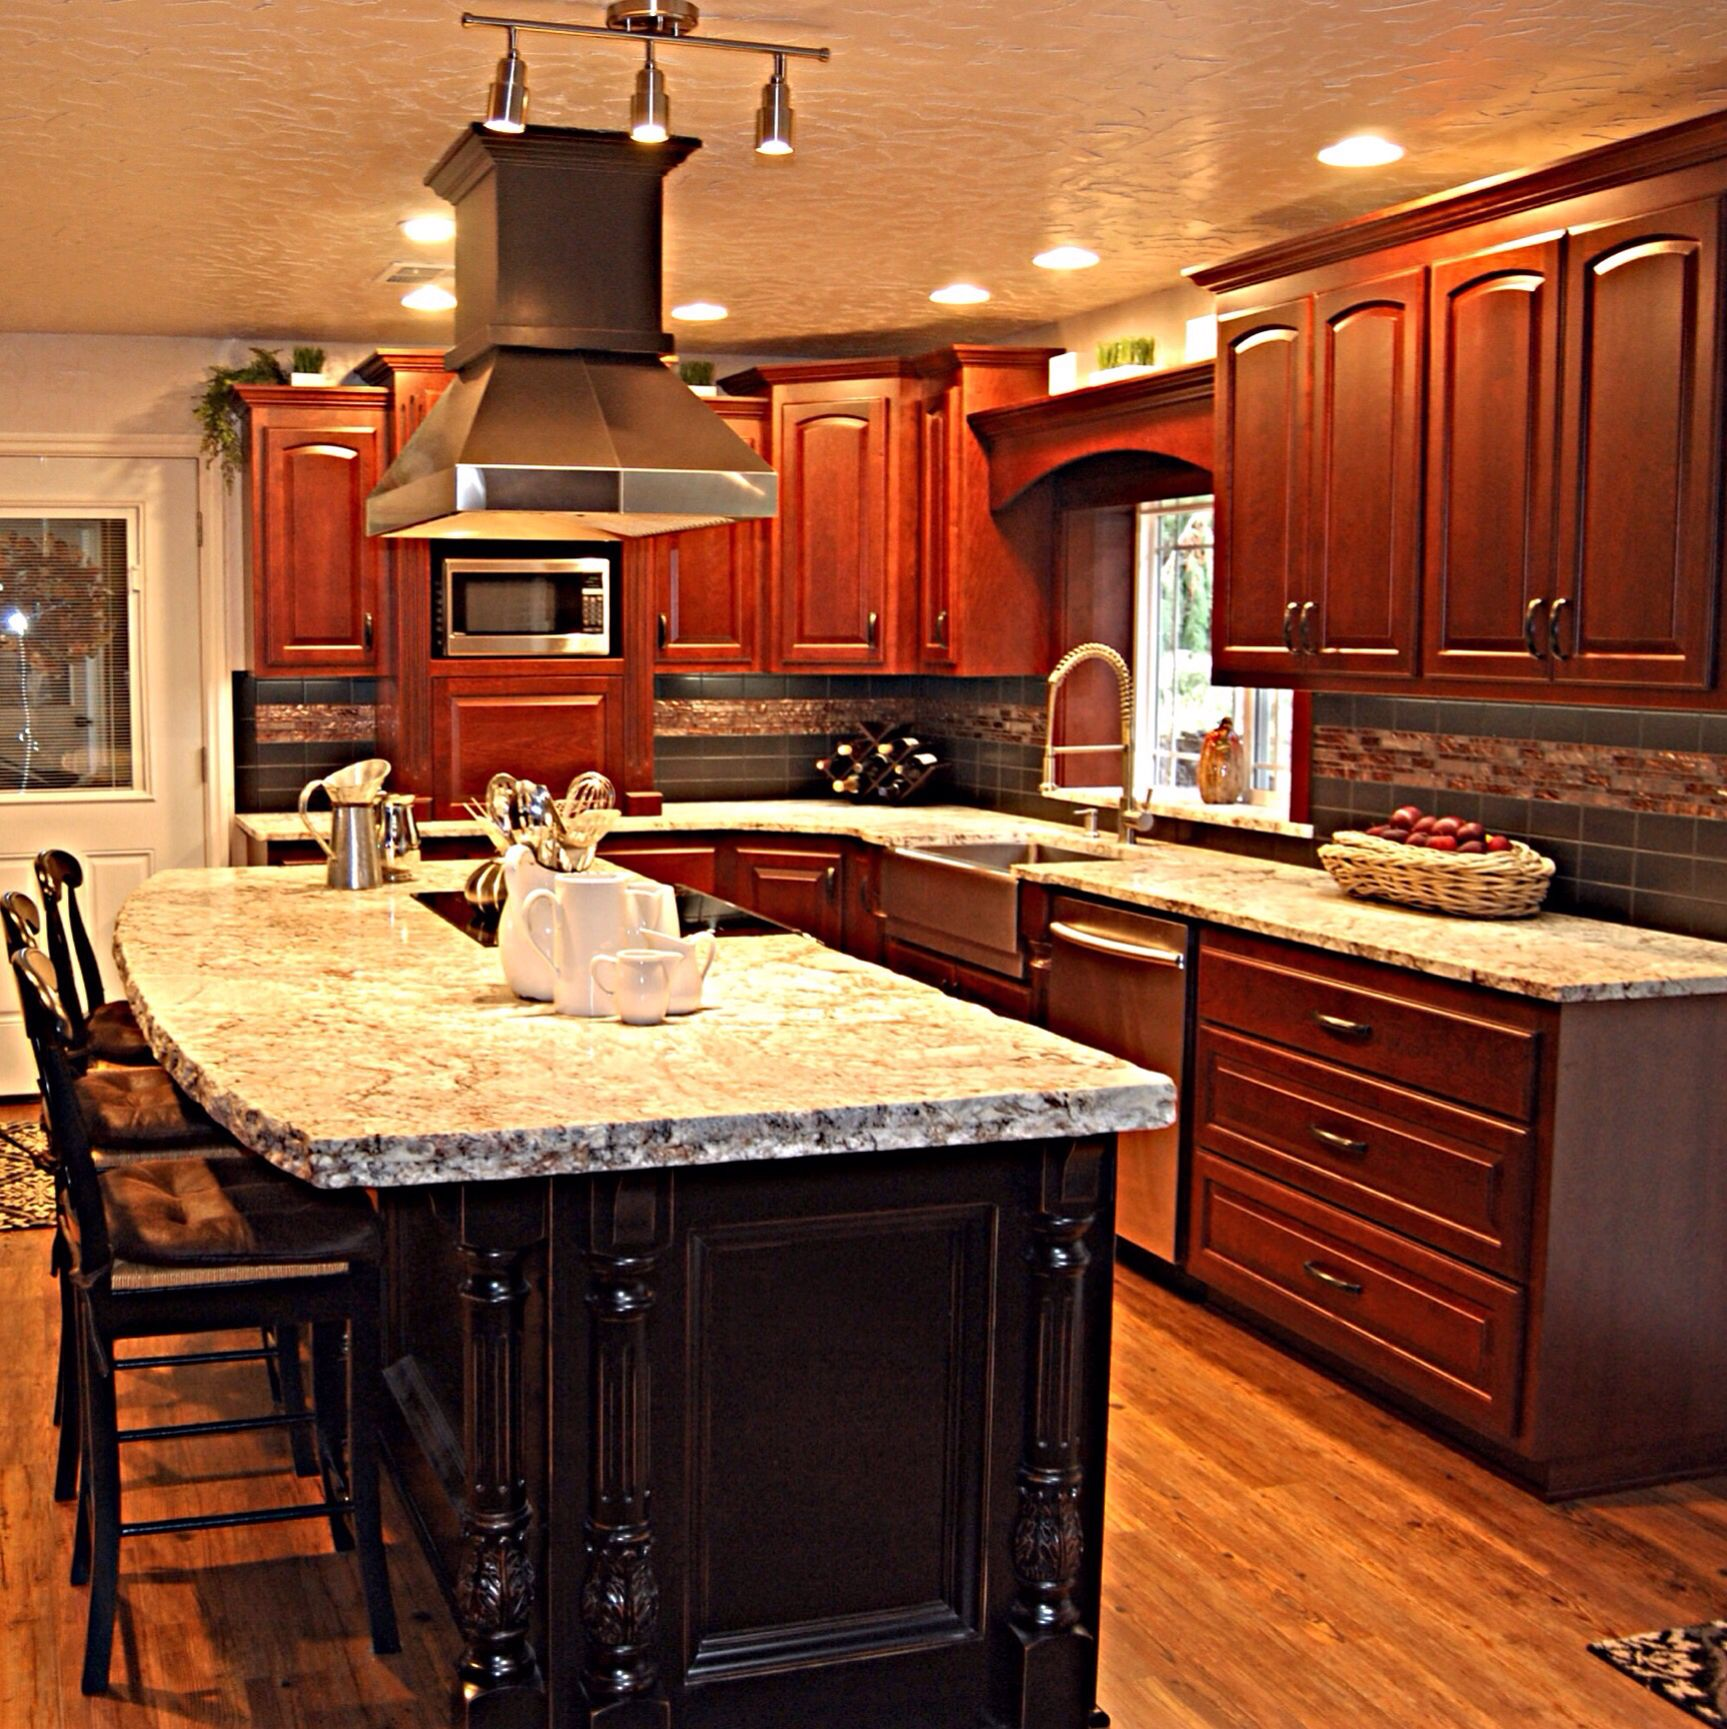 This is a great custom job with a custom stain on cherry wood. Thank you to Showcase Kitchens in Chehalis for beautiful custom cabinets, again! Have a question? Contact us at 3607480116, we are open from 9-5 Monday through Friday. Or find us online at interiordesigncenter.co or check us out on Facebook!